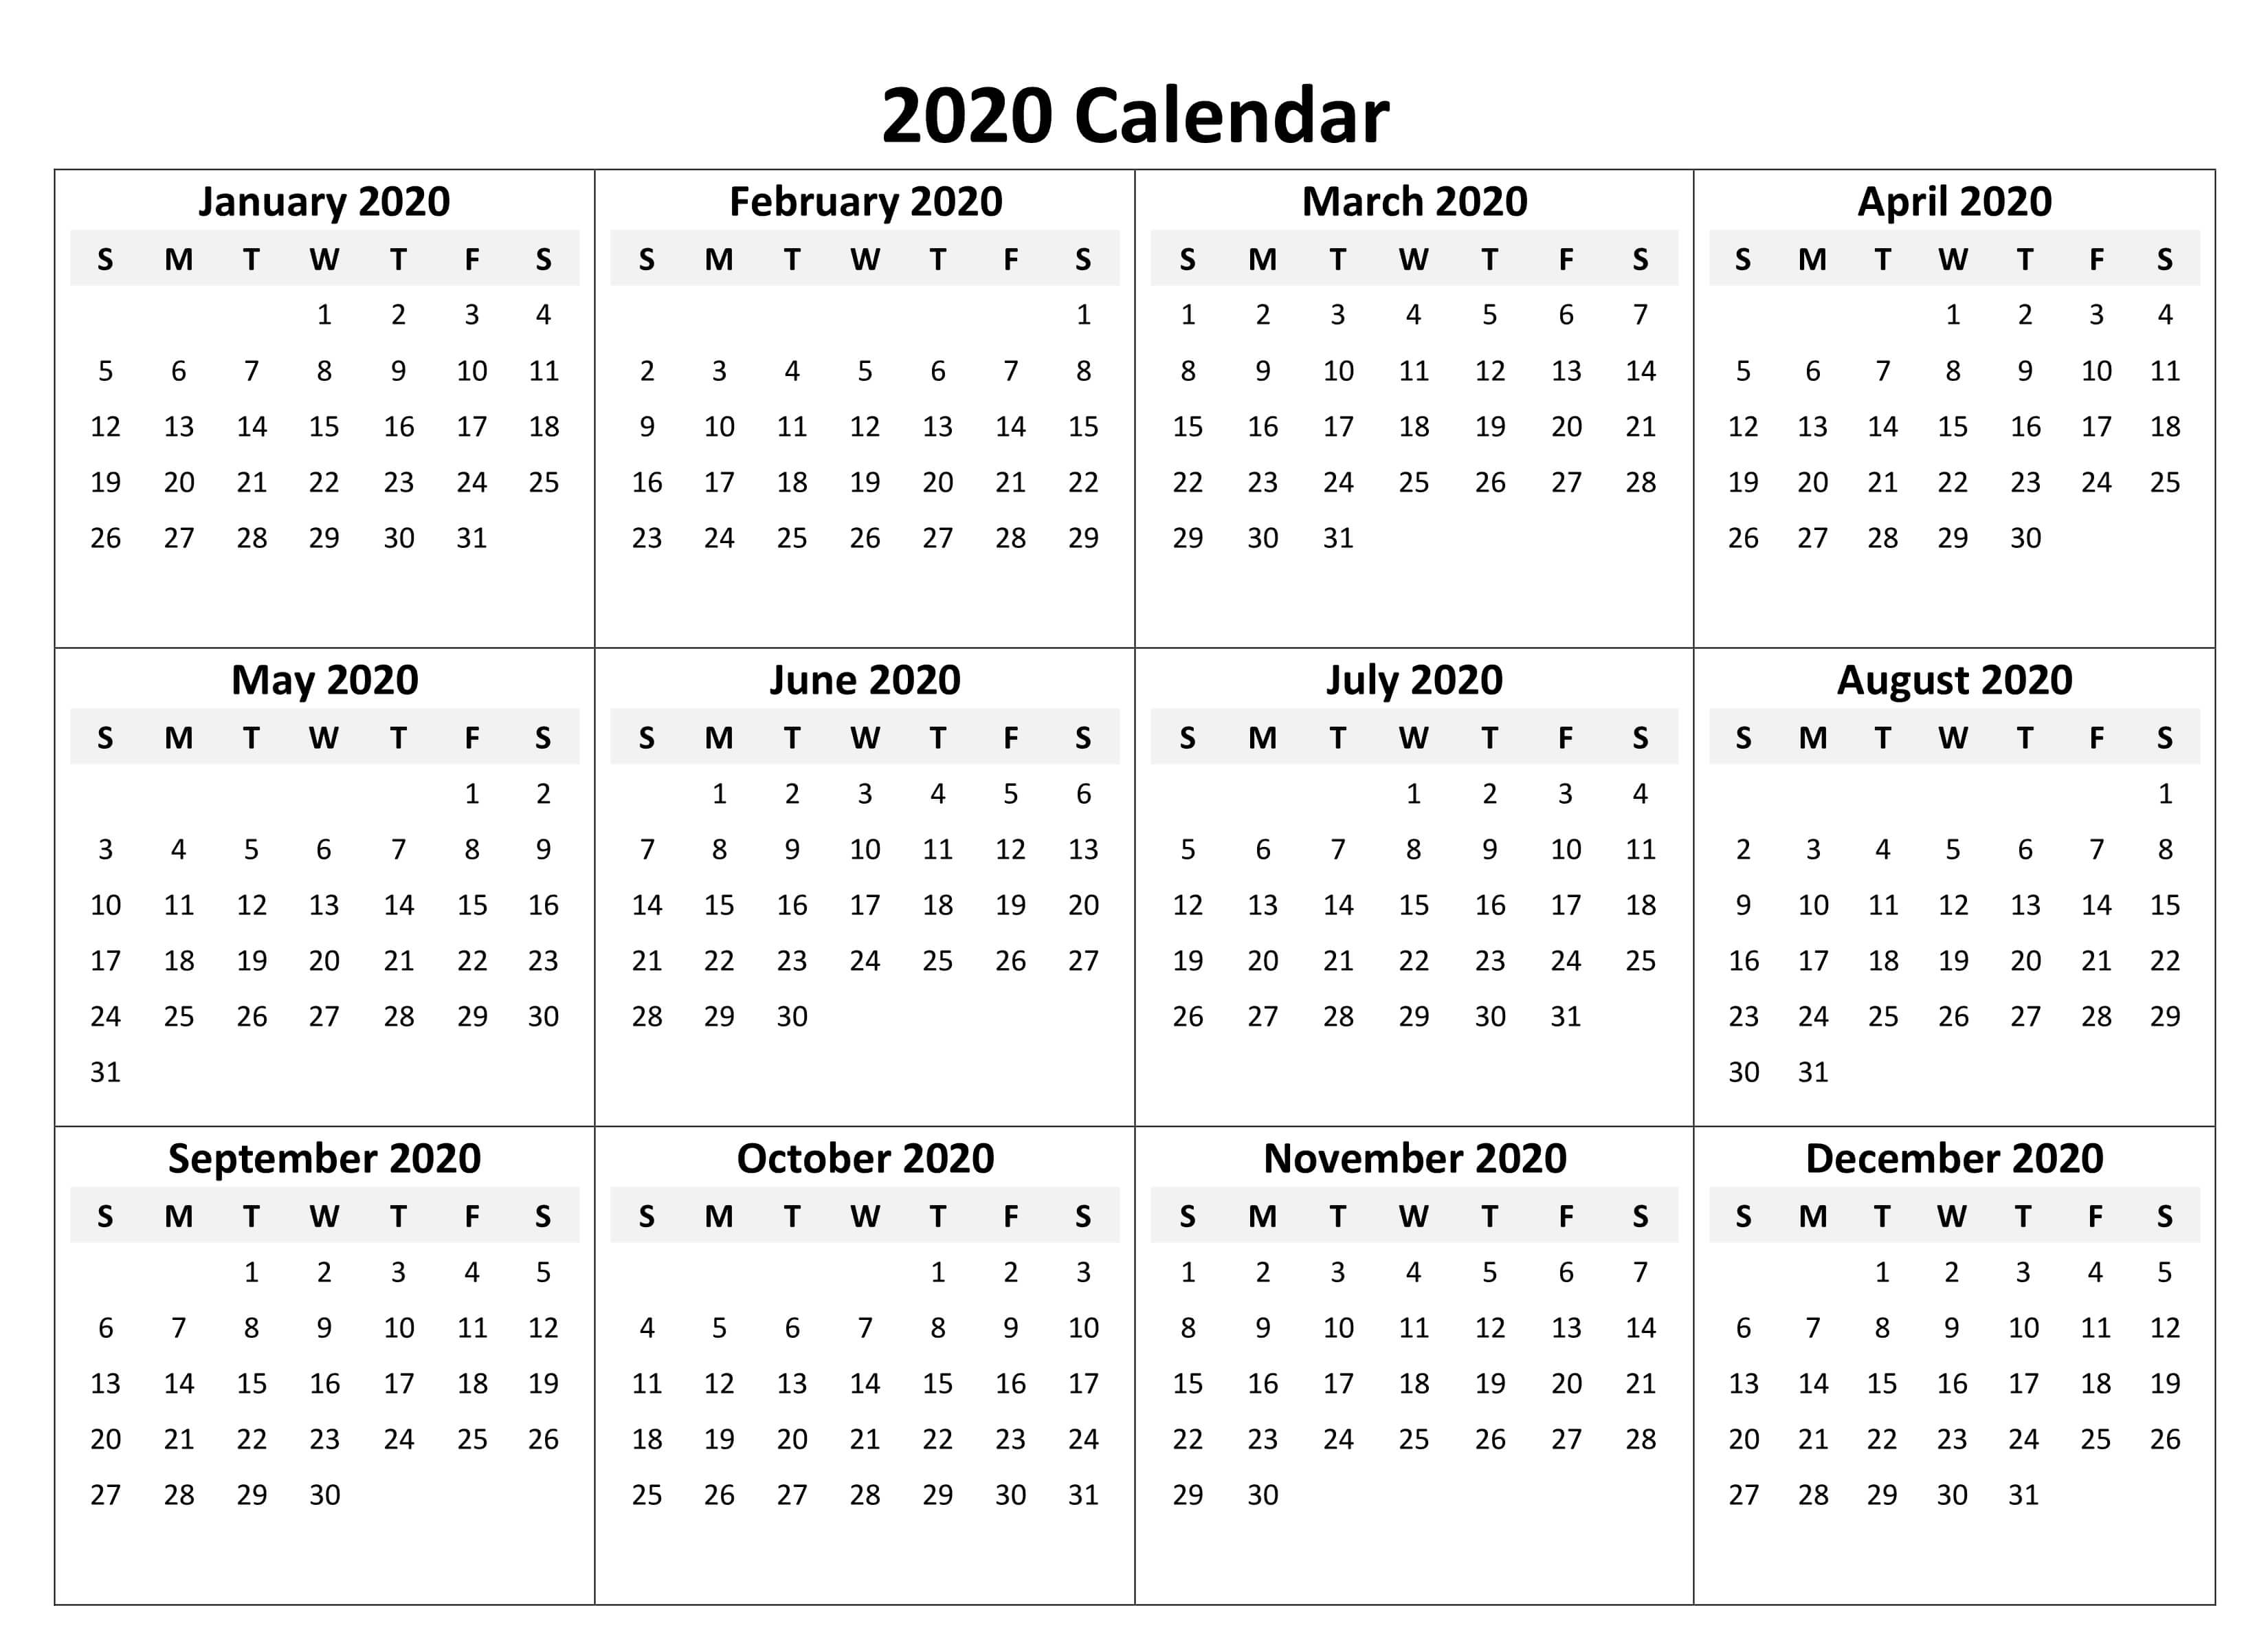 Printable Calendar 2020 With Notes  2019 Calendars For intended for 2020 Year At A Glance Printable